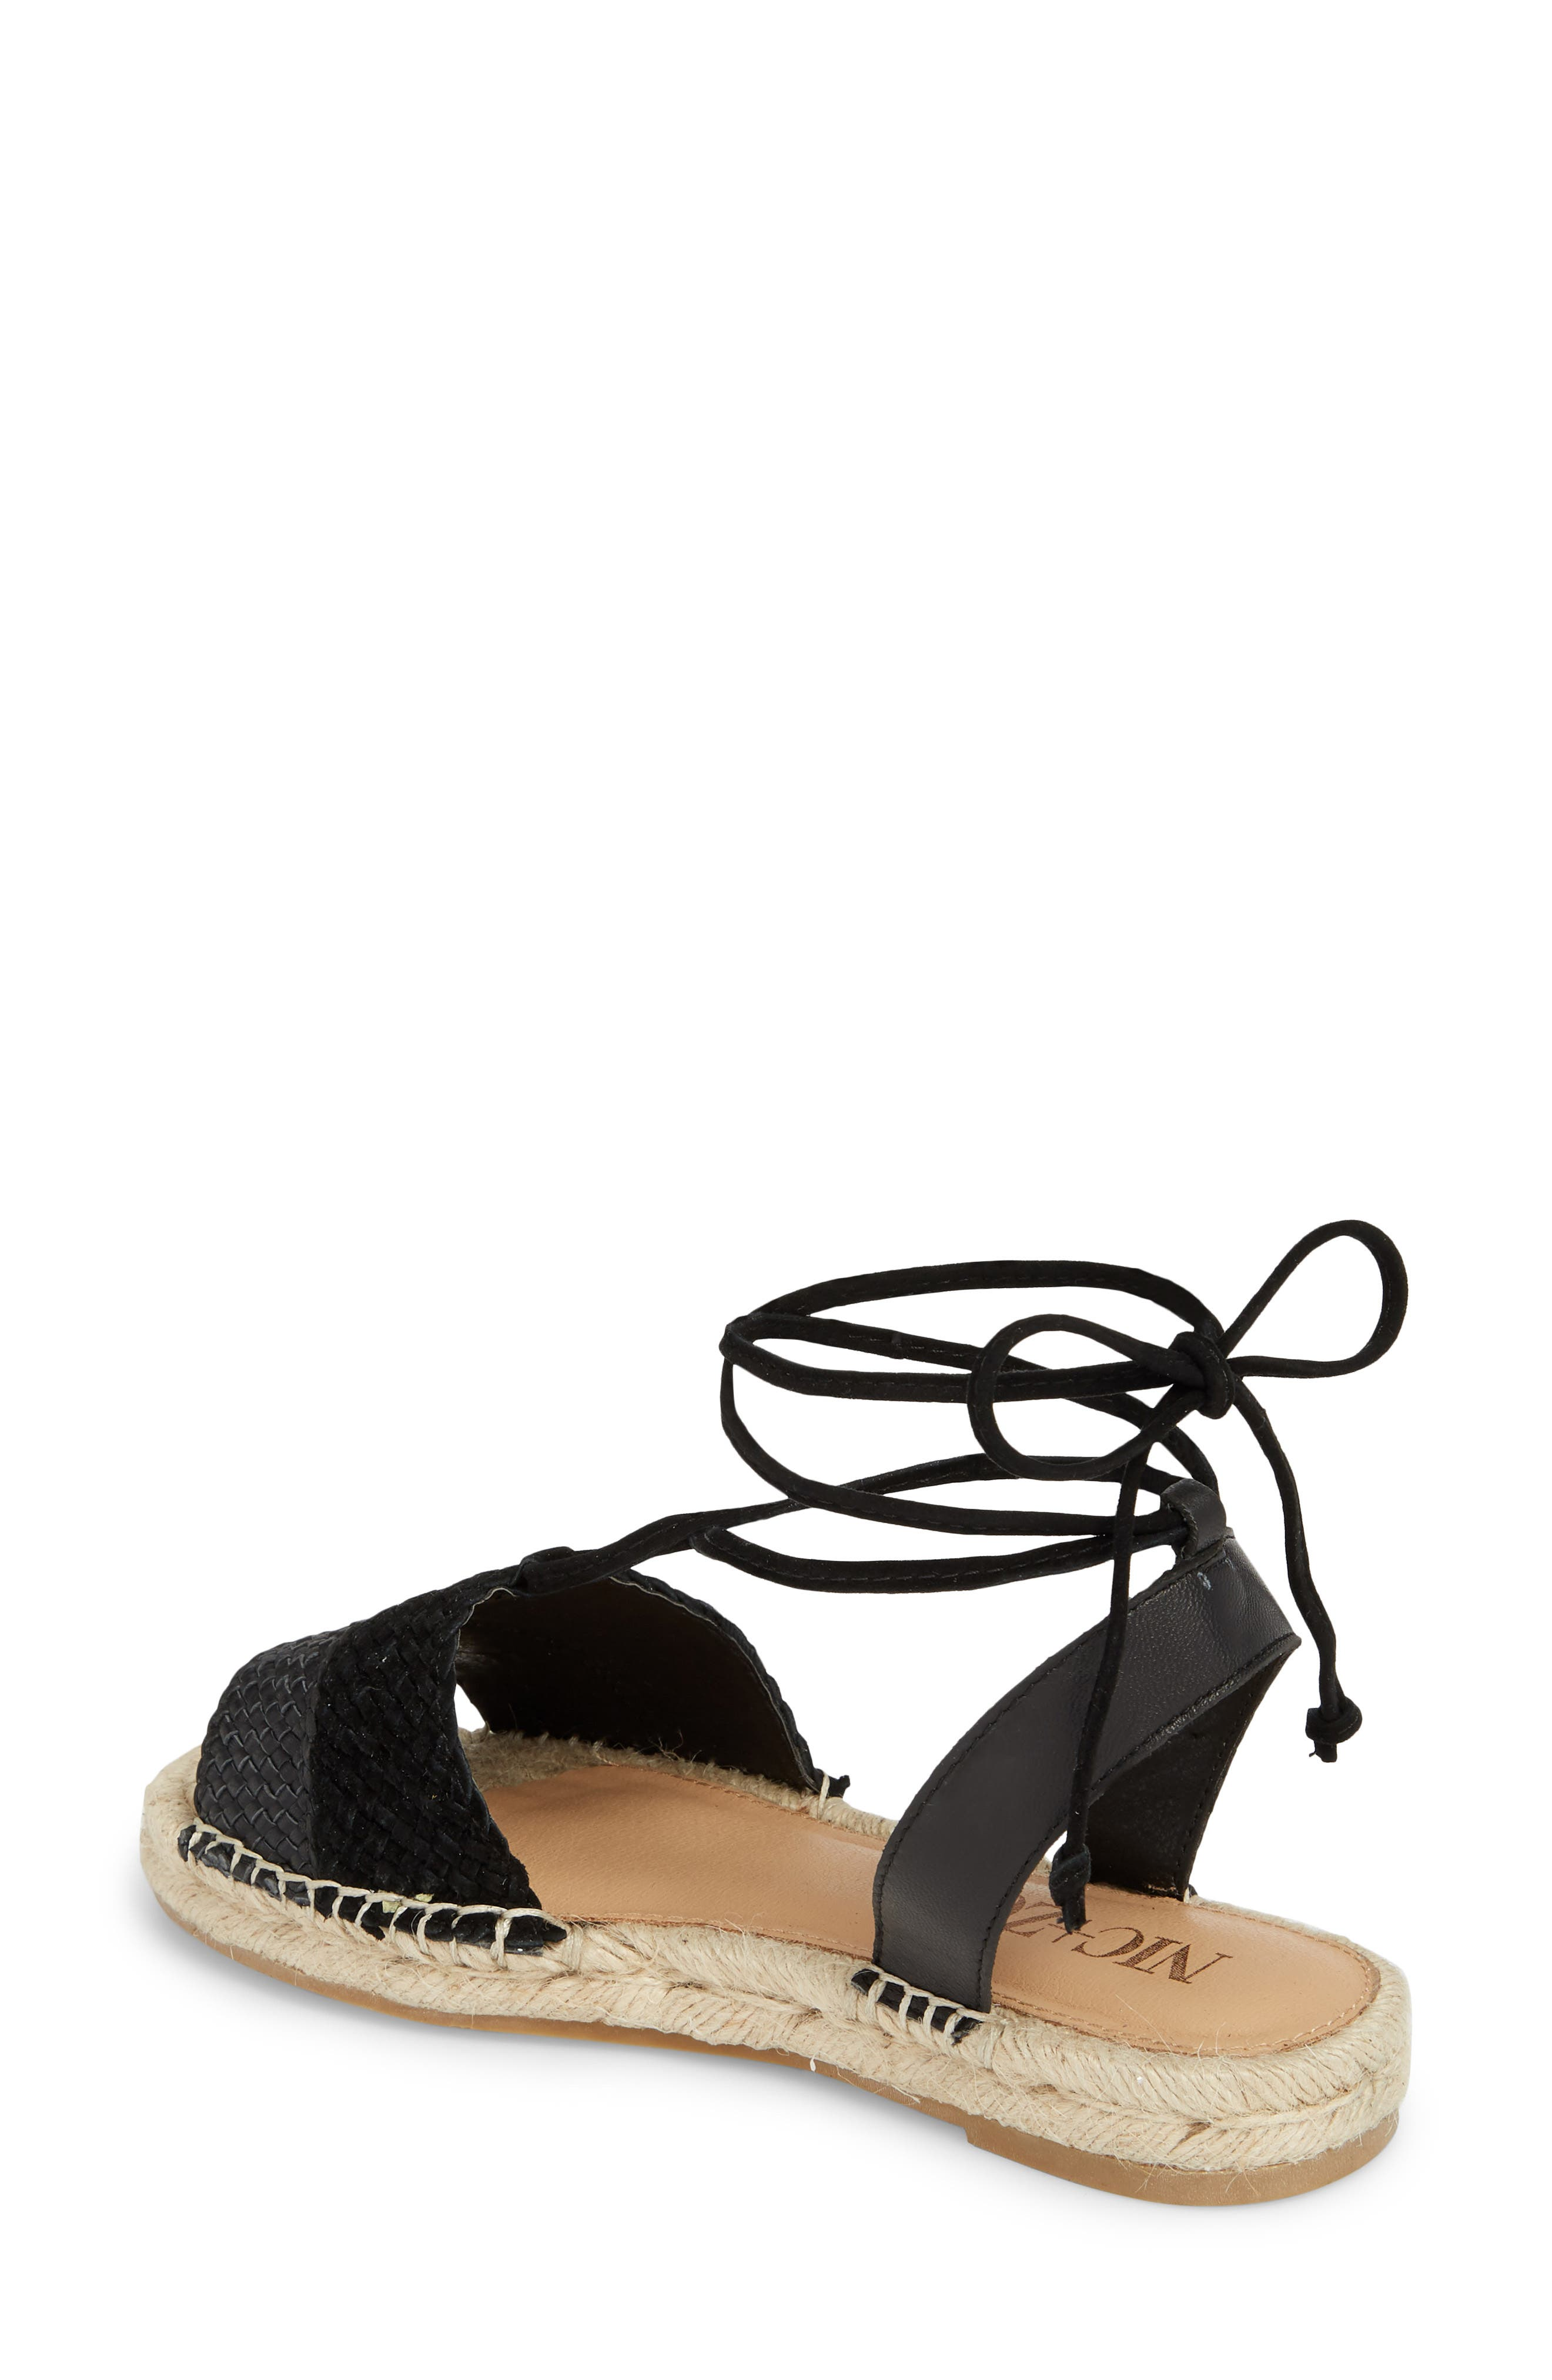 NIC+ZOE, Eliza Ankle Wrap Espadrille Sandal, Alternate thumbnail 2, color, BLACK FABRIC